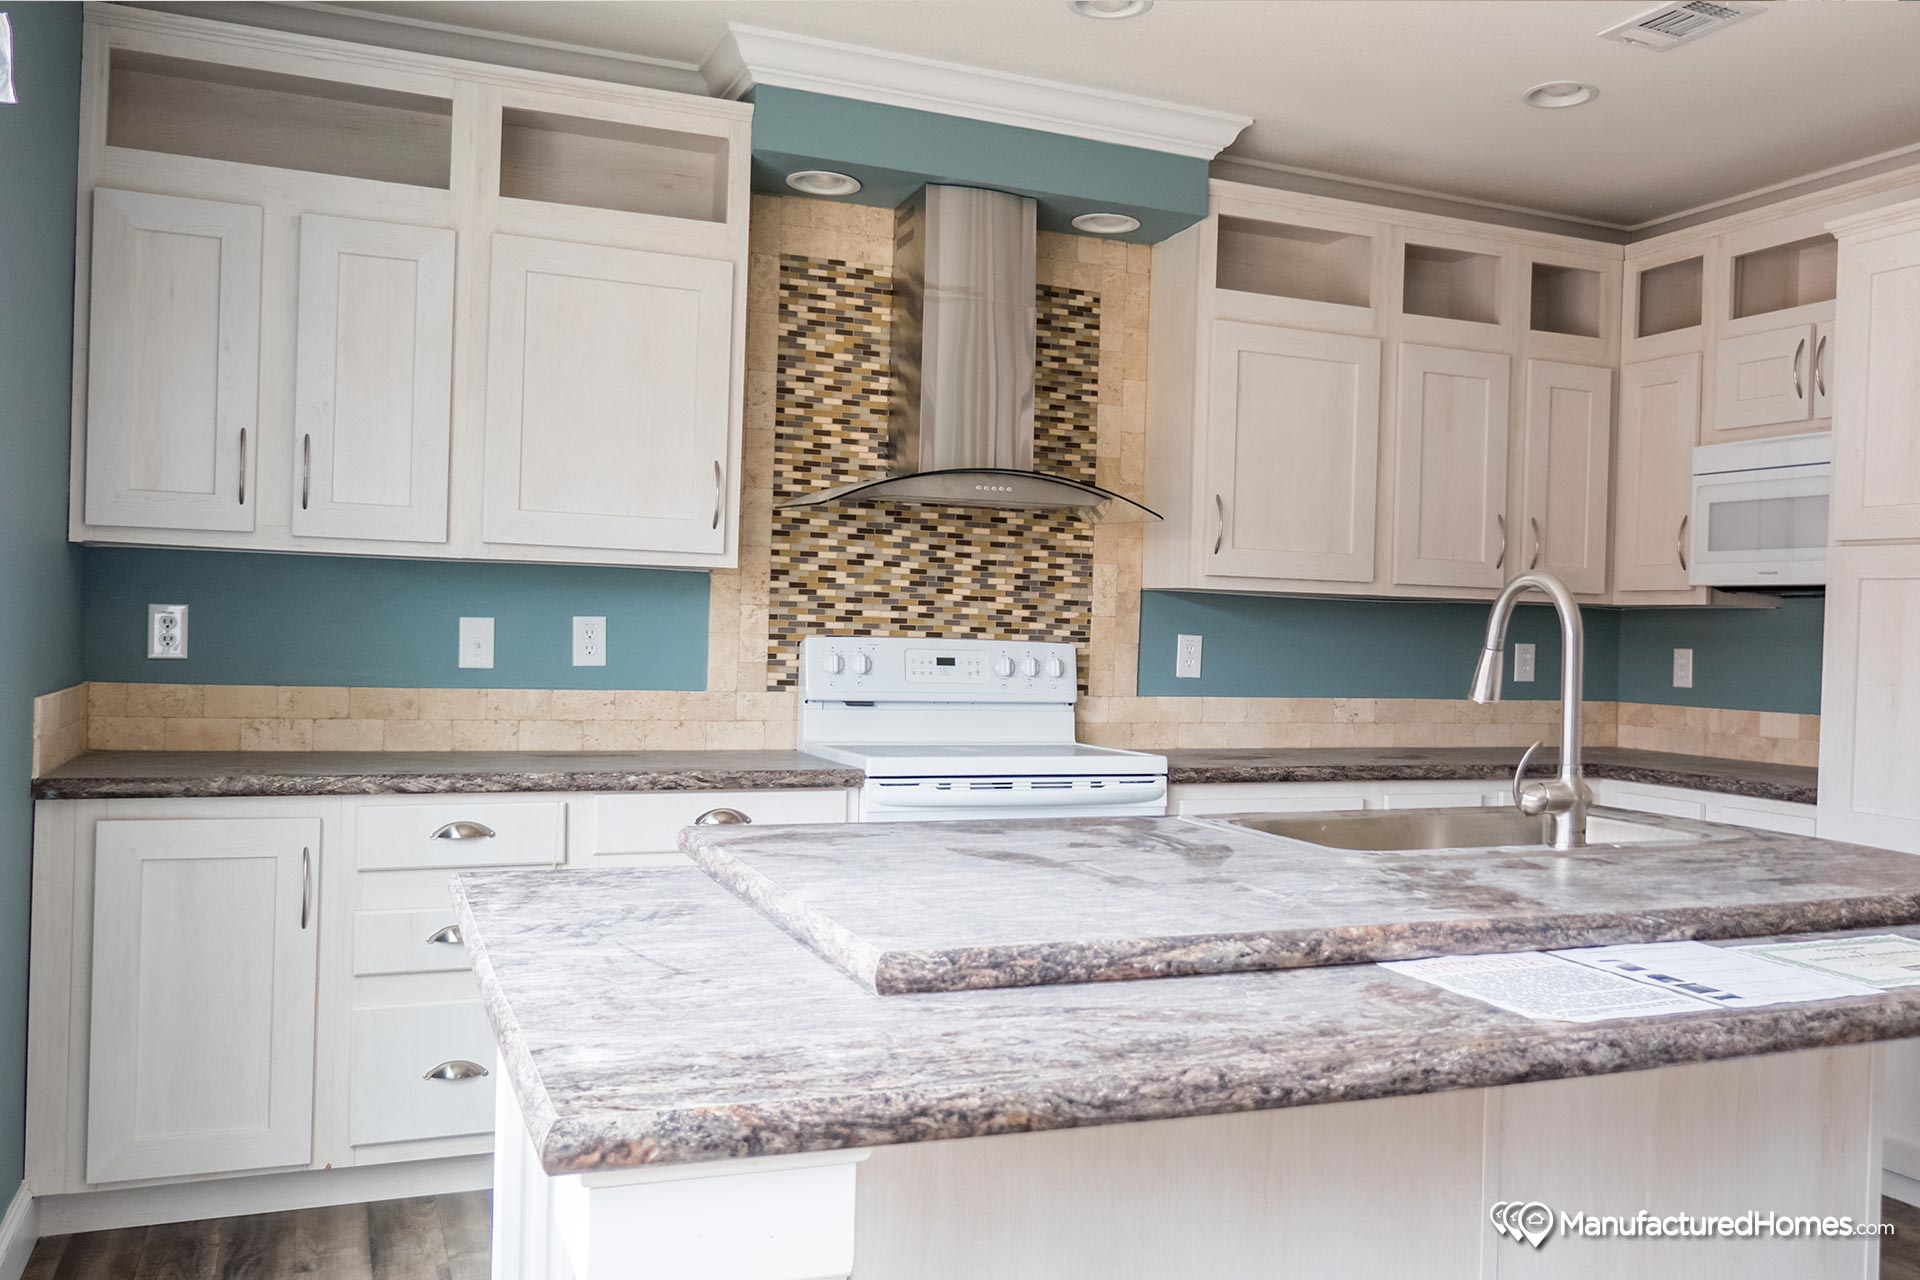 Manor Hill / The St. Louis - Kitchen